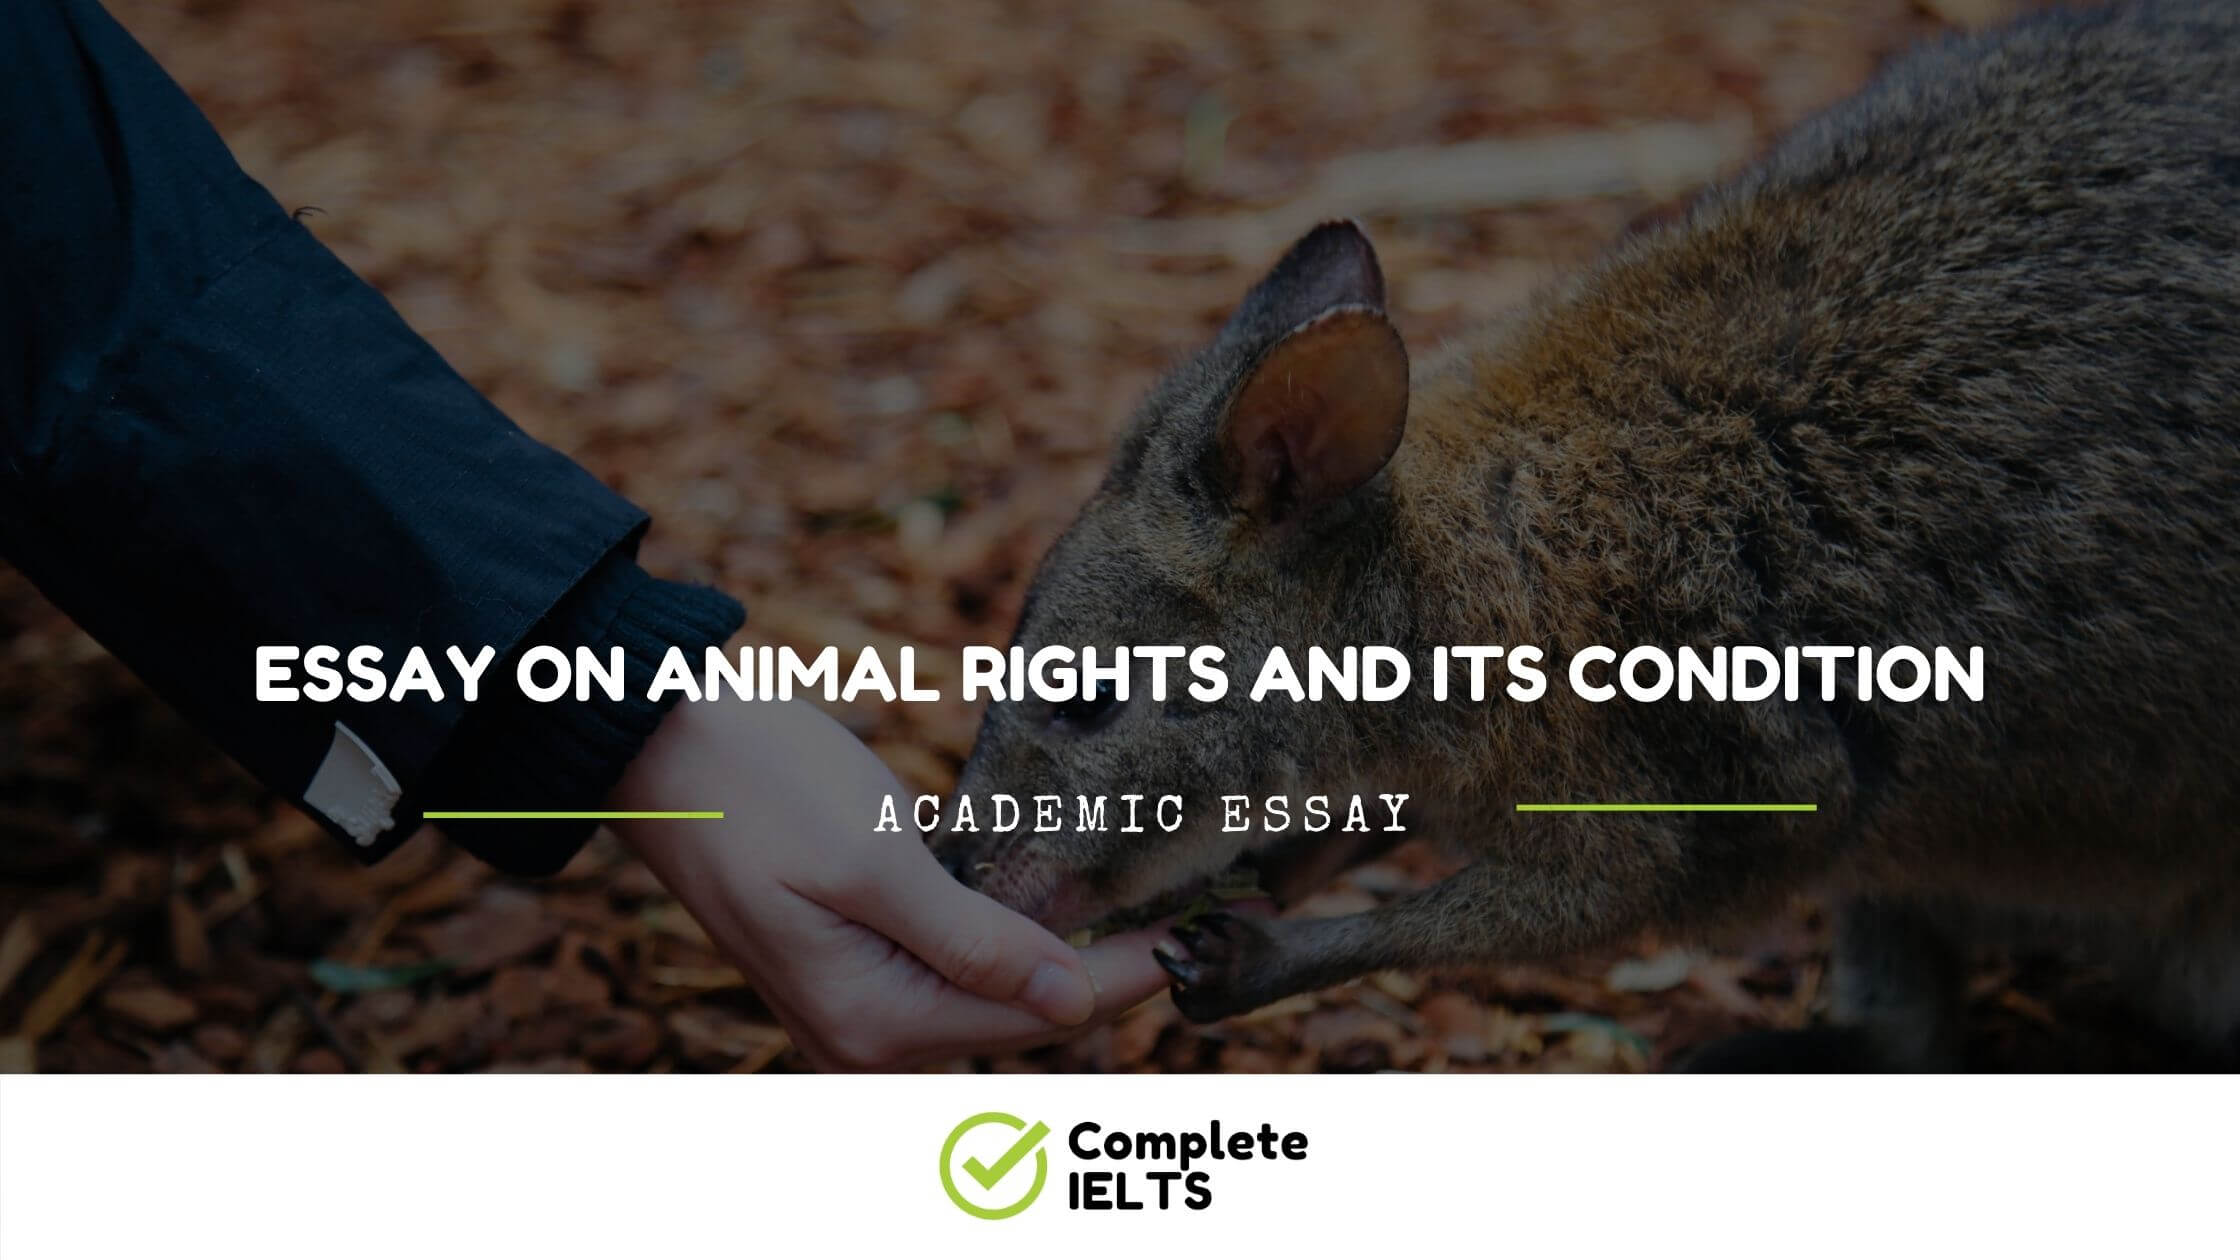 Essay on Animal rights and its condition